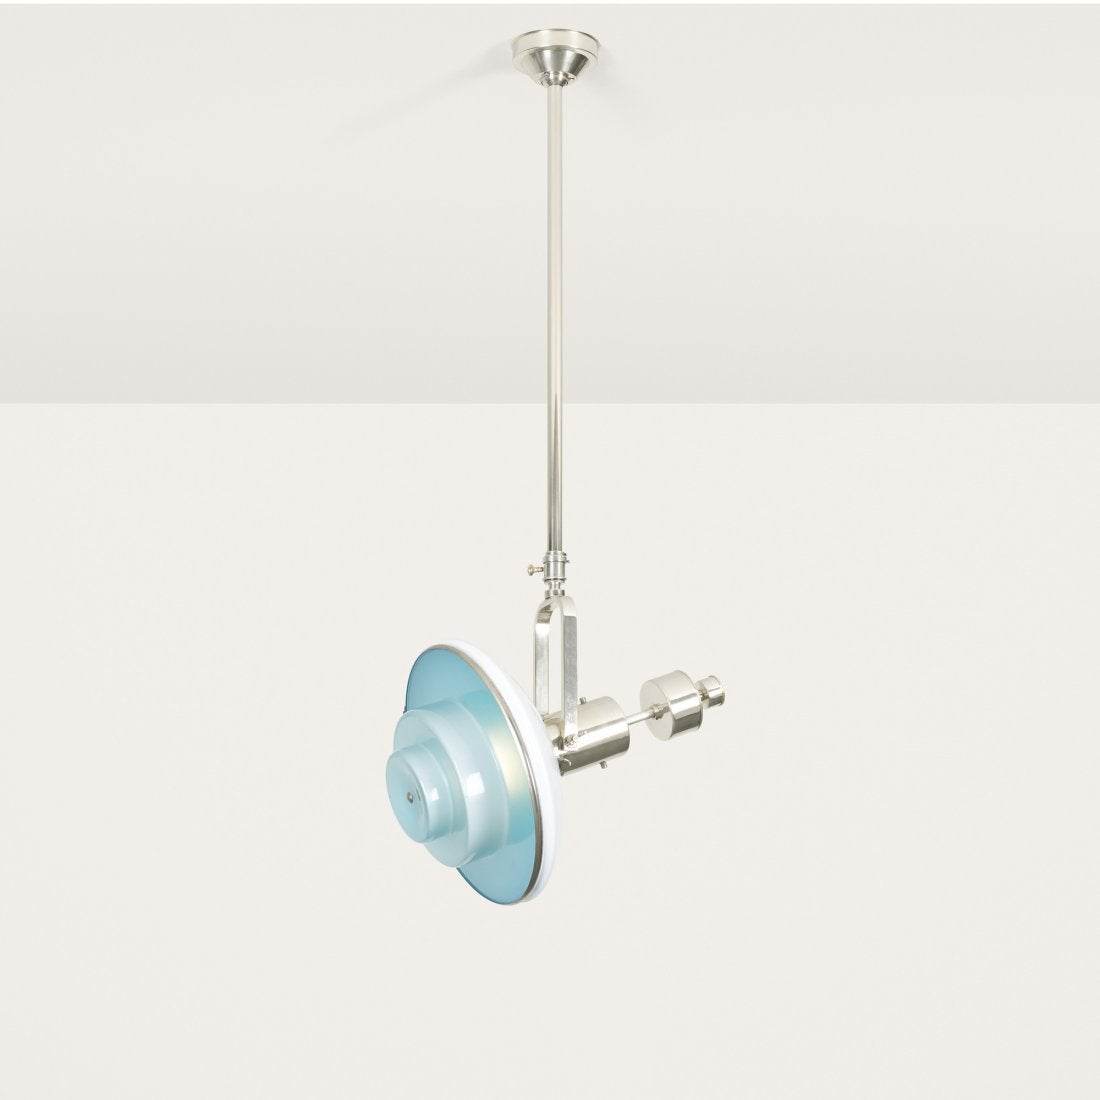 Ceiling lights germany : Otto mueller adjustable ceiling light germany for